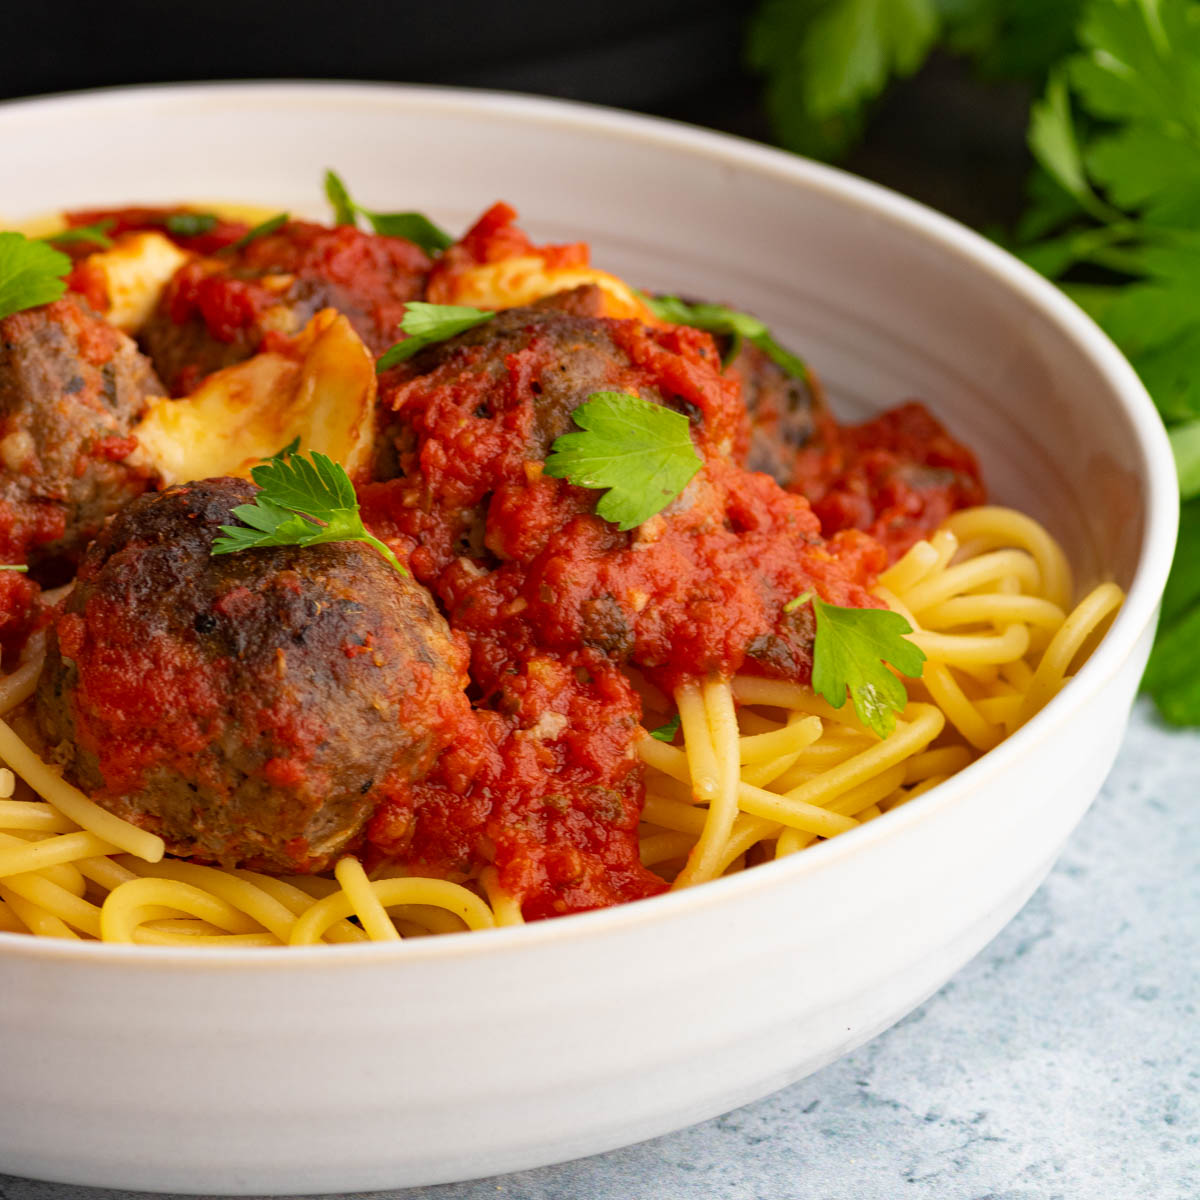 A bowl of spaghetti topped with rich tomato sauce, oven baked meatballs, and Italian parsley to garnish.